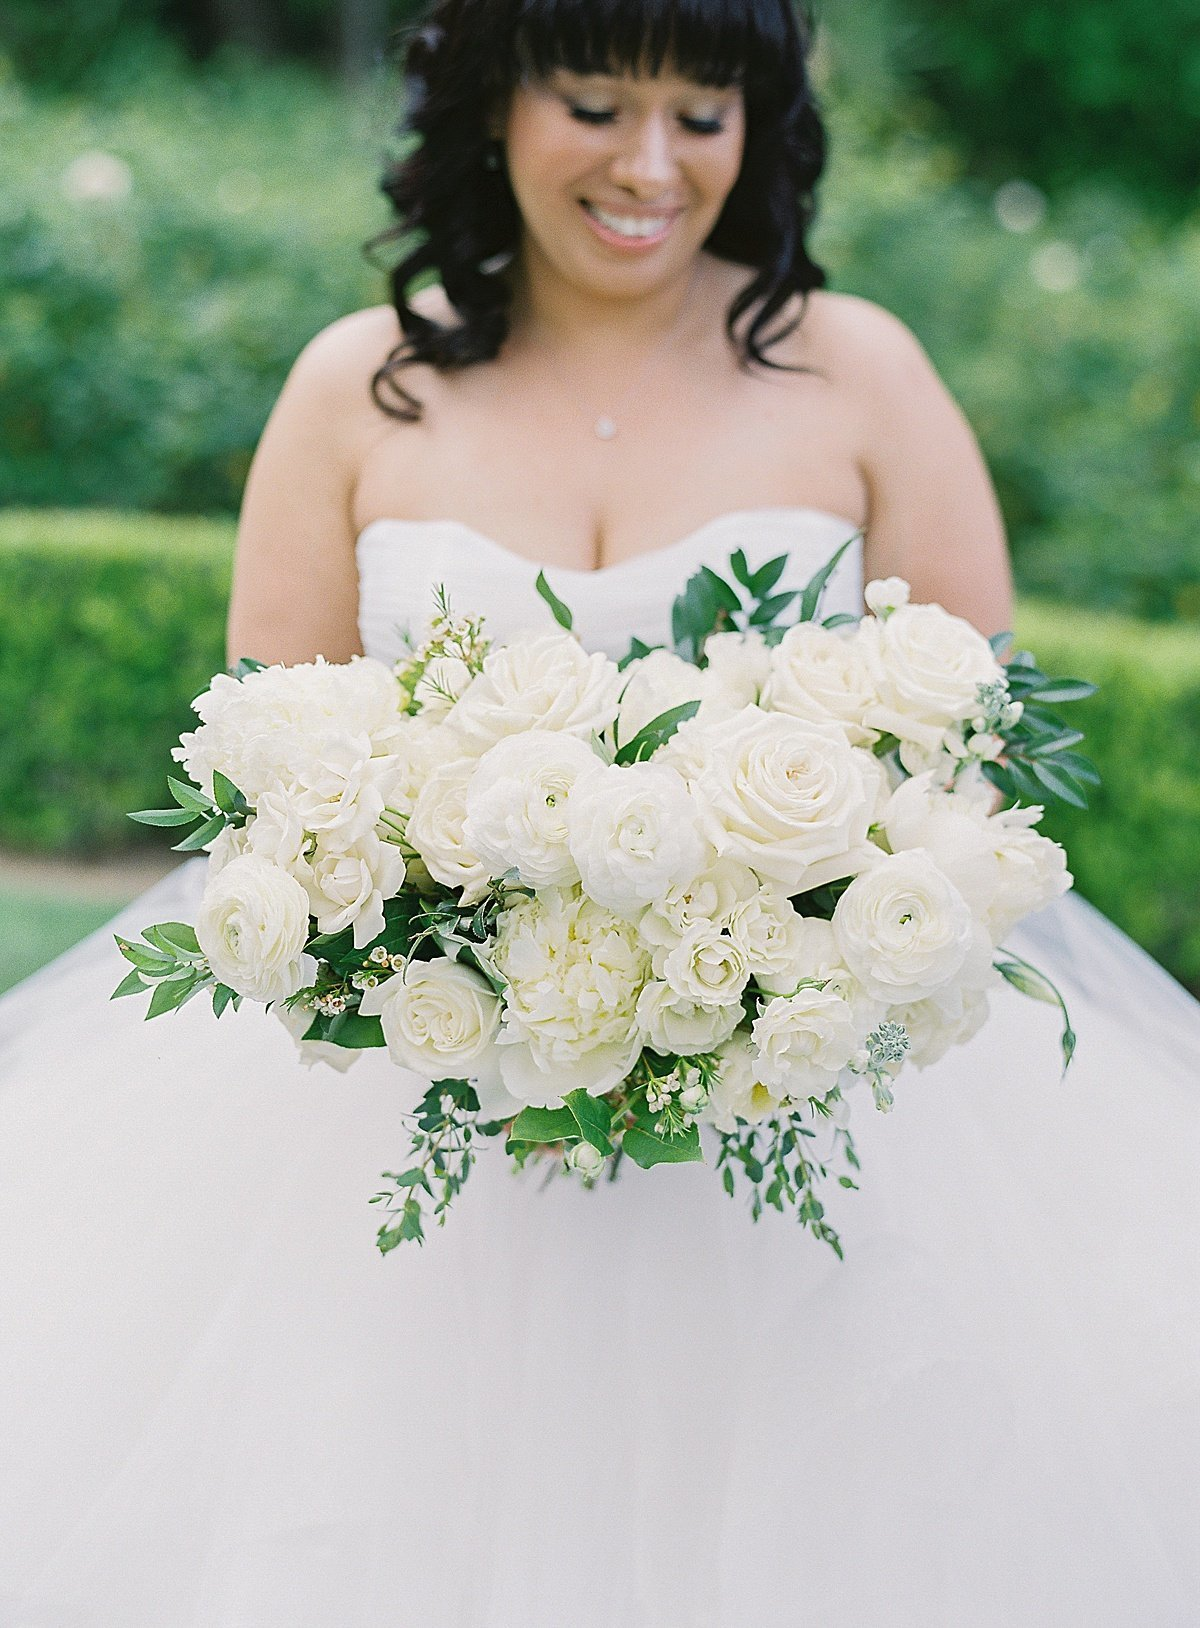 Posh Peony Newhall Mansion Piru Lush White Floral and Greenery Wedding_0015